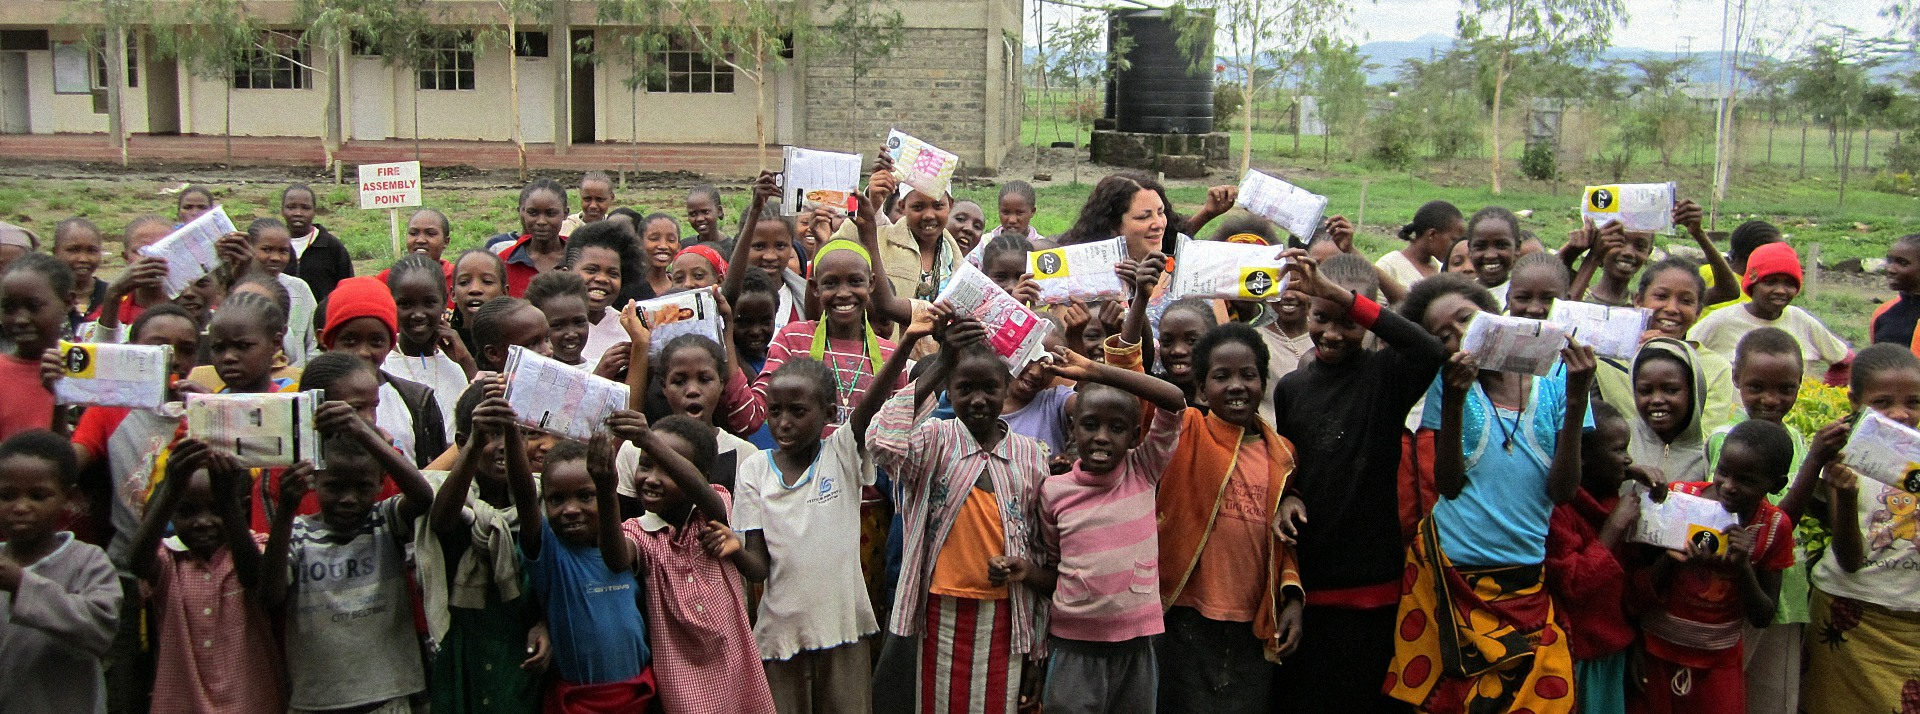 We collect underwear to give to people in need in Africa and the UK